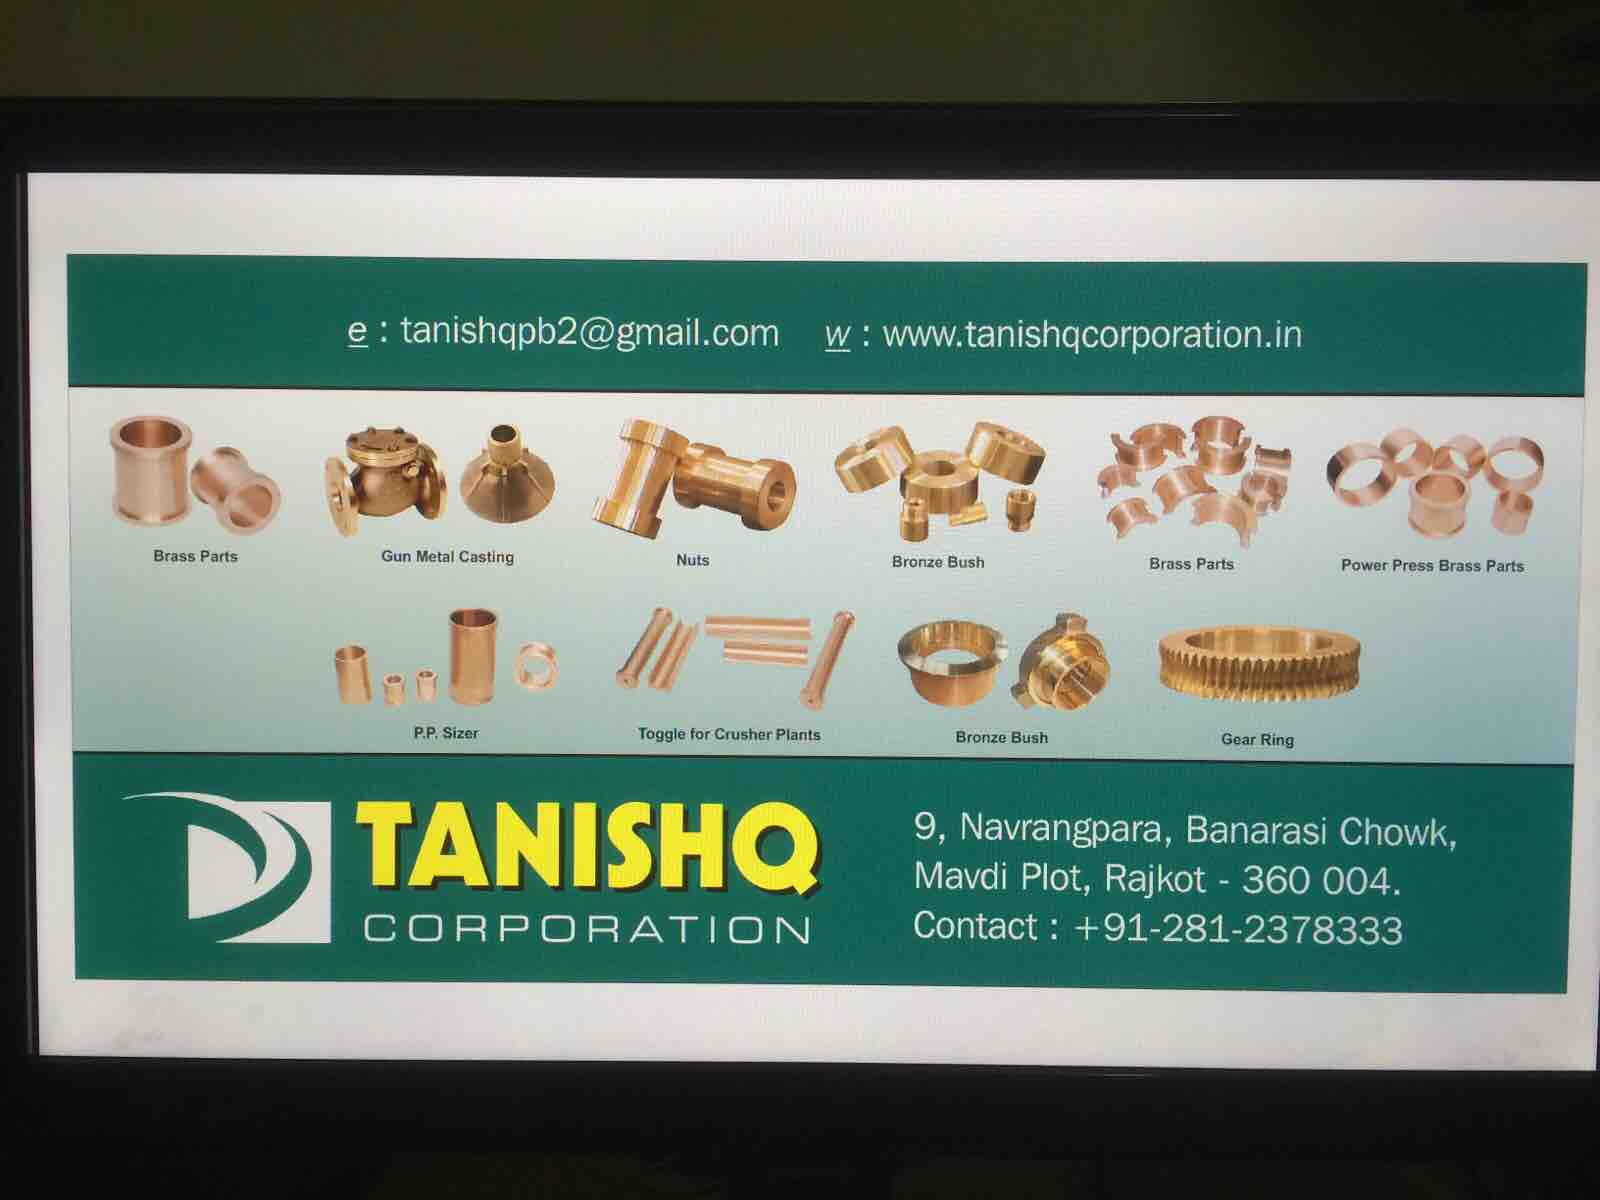 Tanishq Corporation